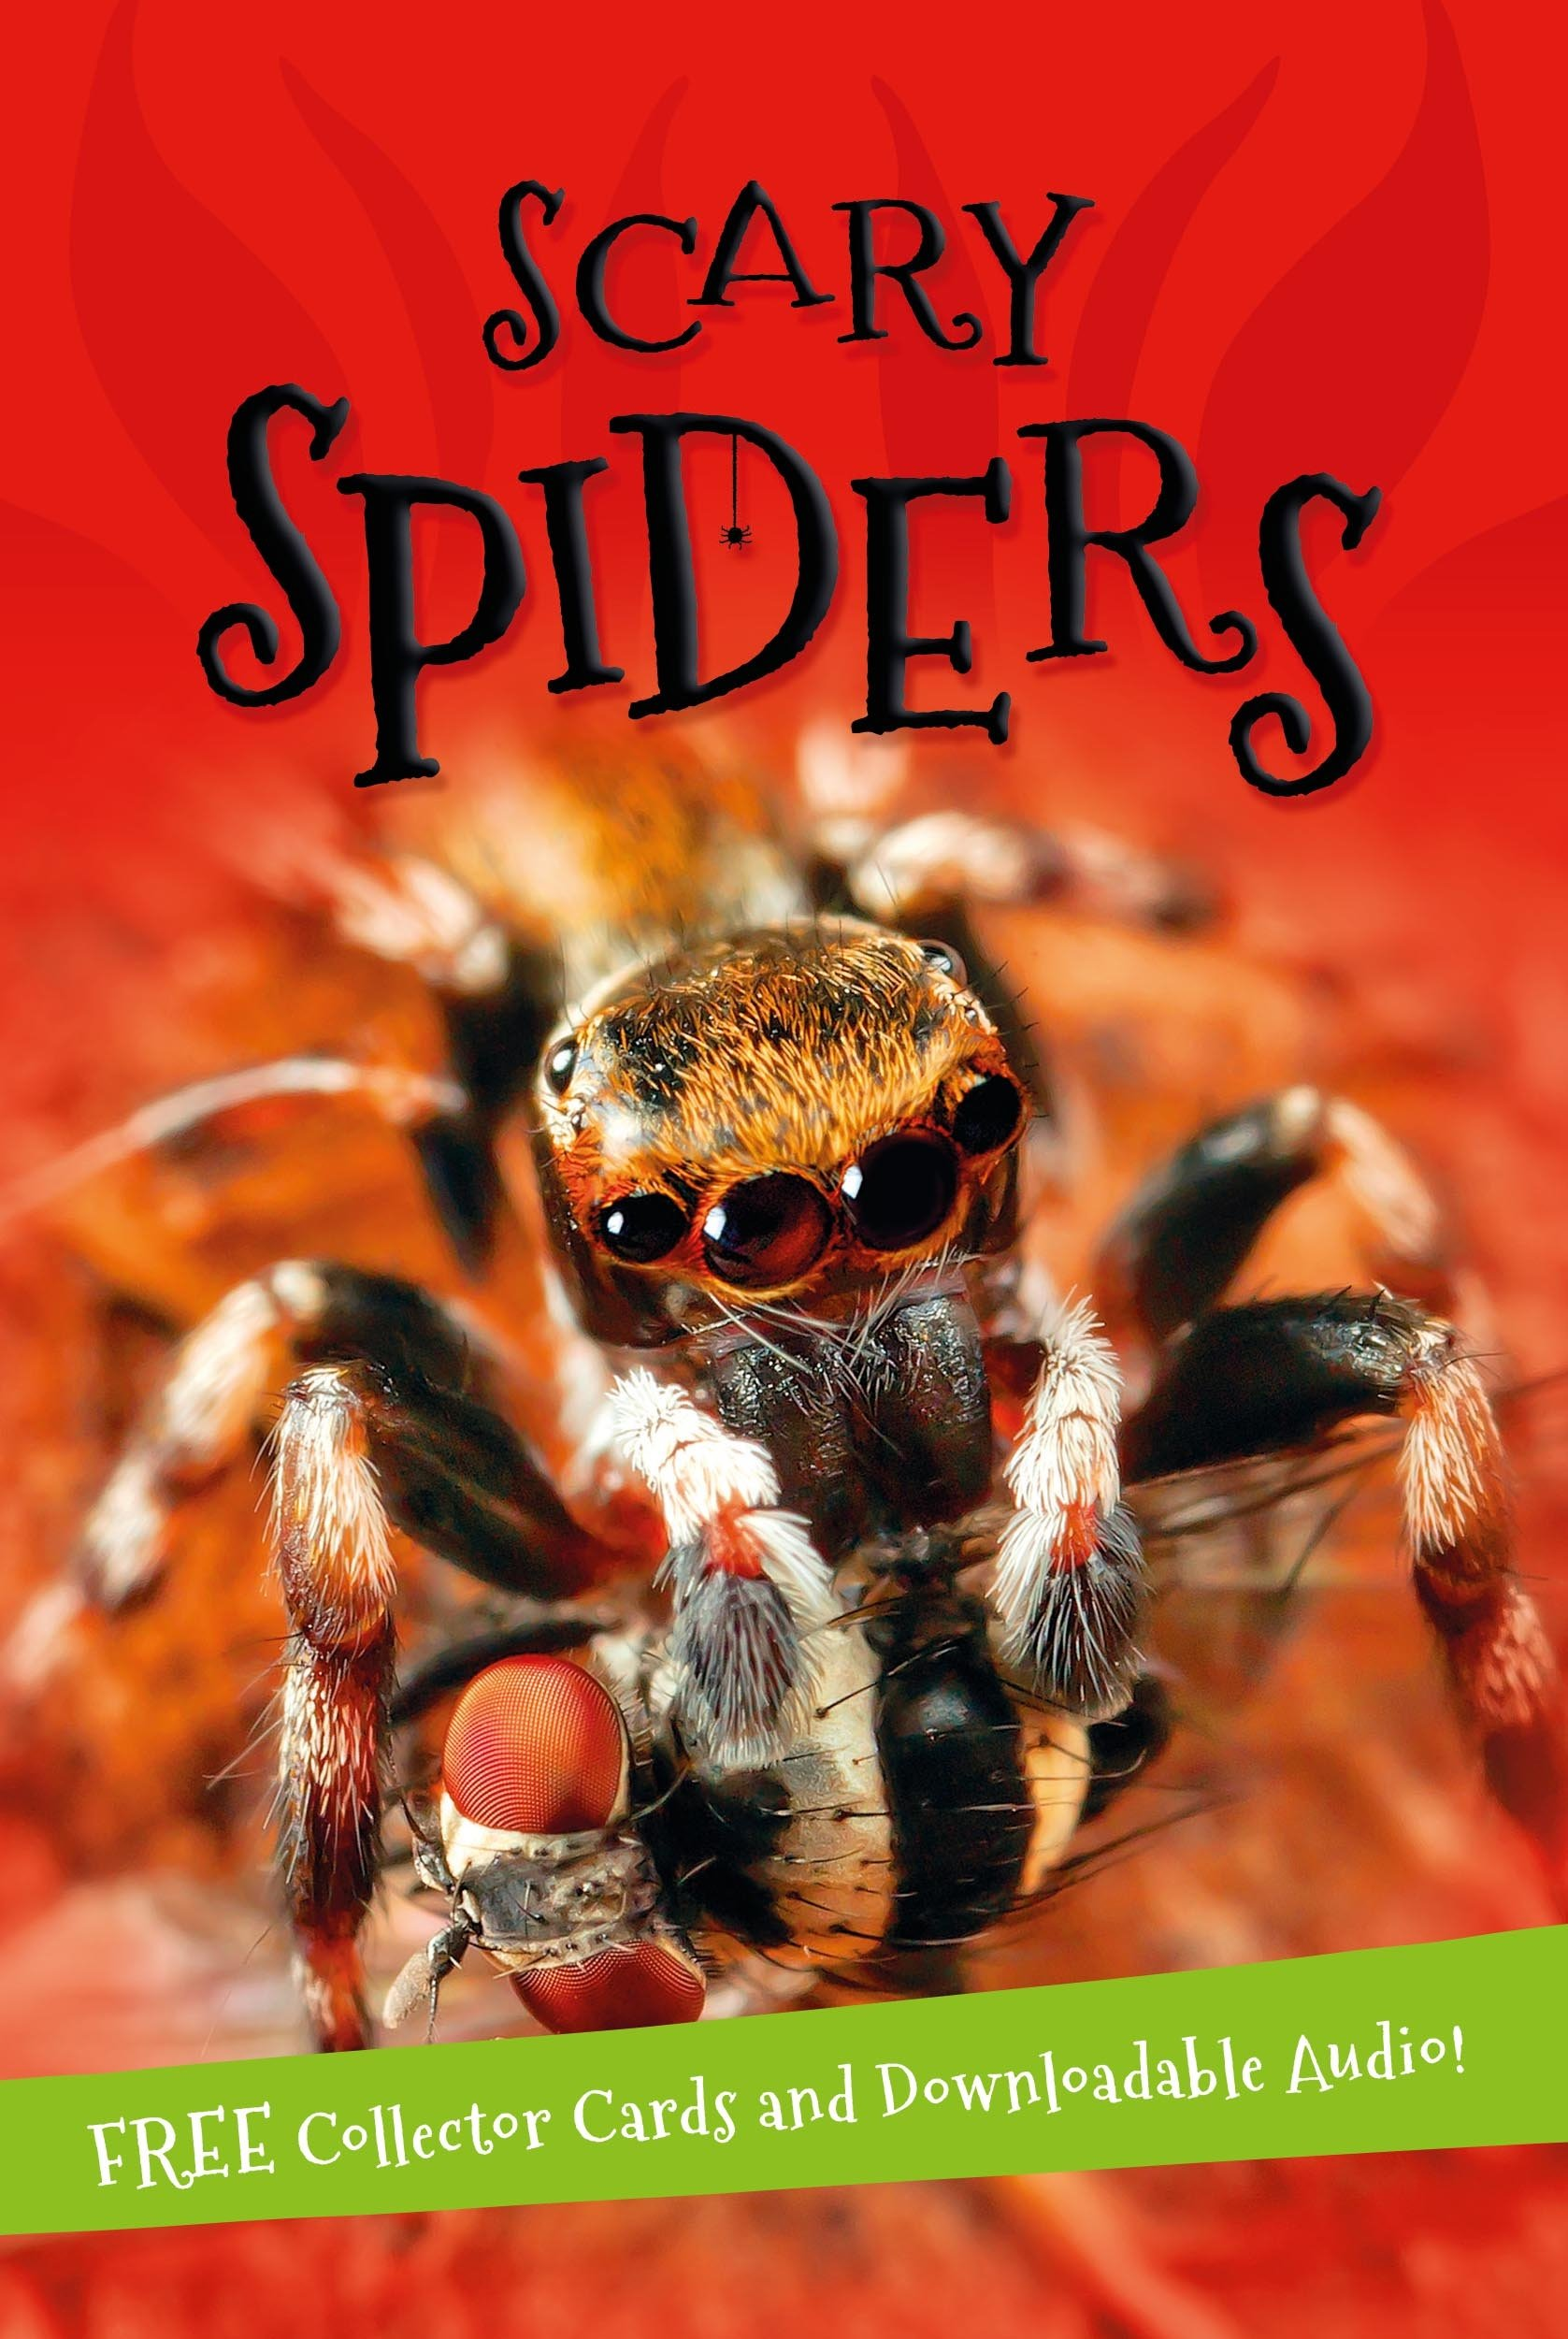 It's all about... Scary Spiders it s all about scary spiders